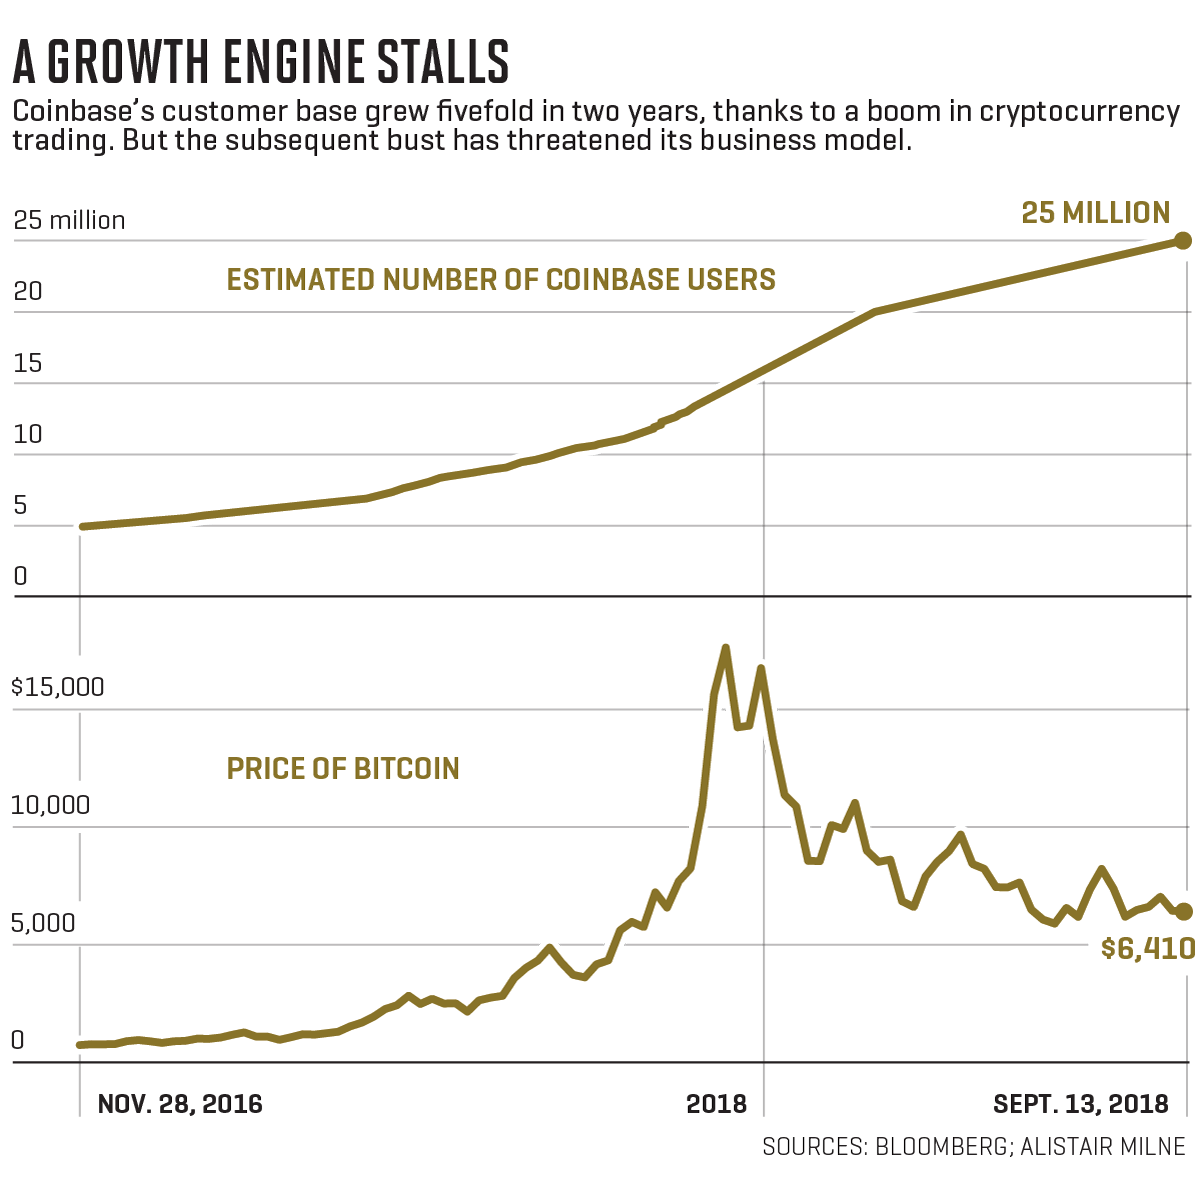 cryptocurrency trading market projected growth